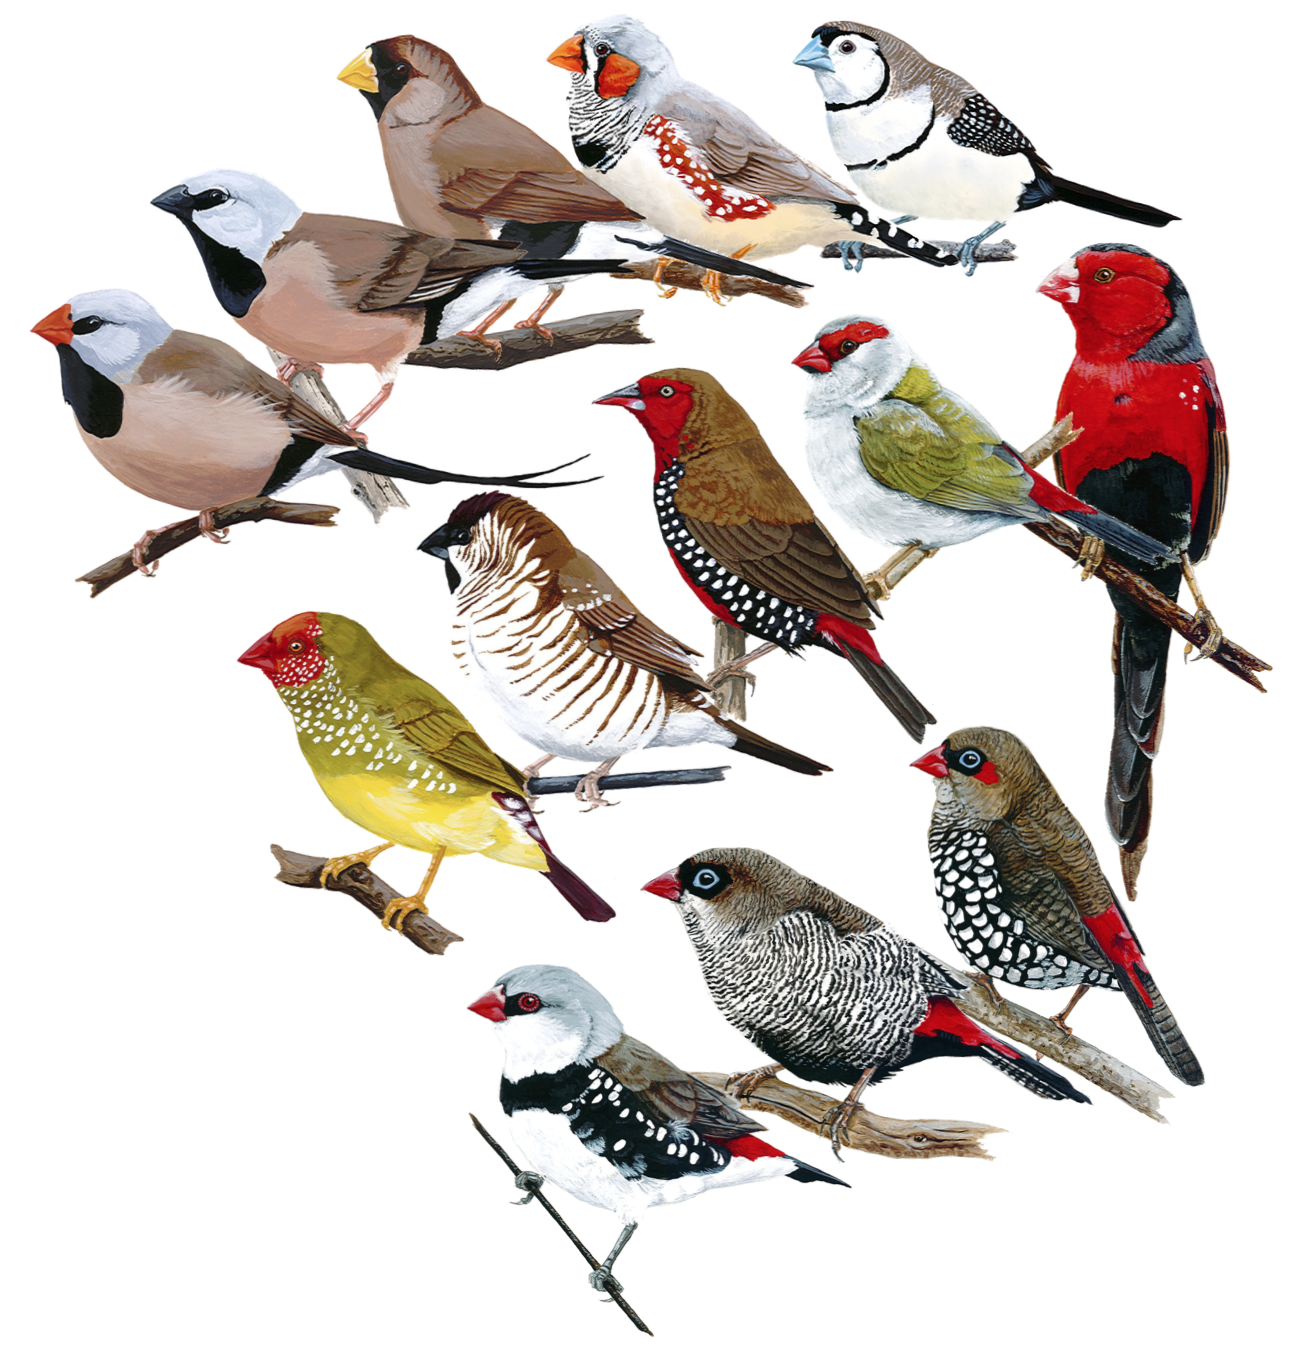 Thirteen members of the Australian grassfinches under study. . Top row, left to right: Long-tailed finch ( Poephila acuticauda ), Black-throated finch ( P. cincta ), Masked finch ( P. personata ), Zebra finch ( Taeniopygia guttata ), Double-barred finch ( Stizoptera bichenovii ). Middle row, left to right: Star finch ( Bathilda ruficauda ), Plum-headed finch ( Aidemosyne modesta ), Painted finch ( Emblema pictum ), Red-browed finch ( Neochmia temporalis ), Crimson finch ( N. phaeton ). Bottom row, left to right: Diamond firetail ( Stagonopleura guttata ), Beautiful firetail ( S. bella ), Red-eared firetail ( S. oculata ).  Original artwork courtesy of the incredibly talented A. E. Johnson.